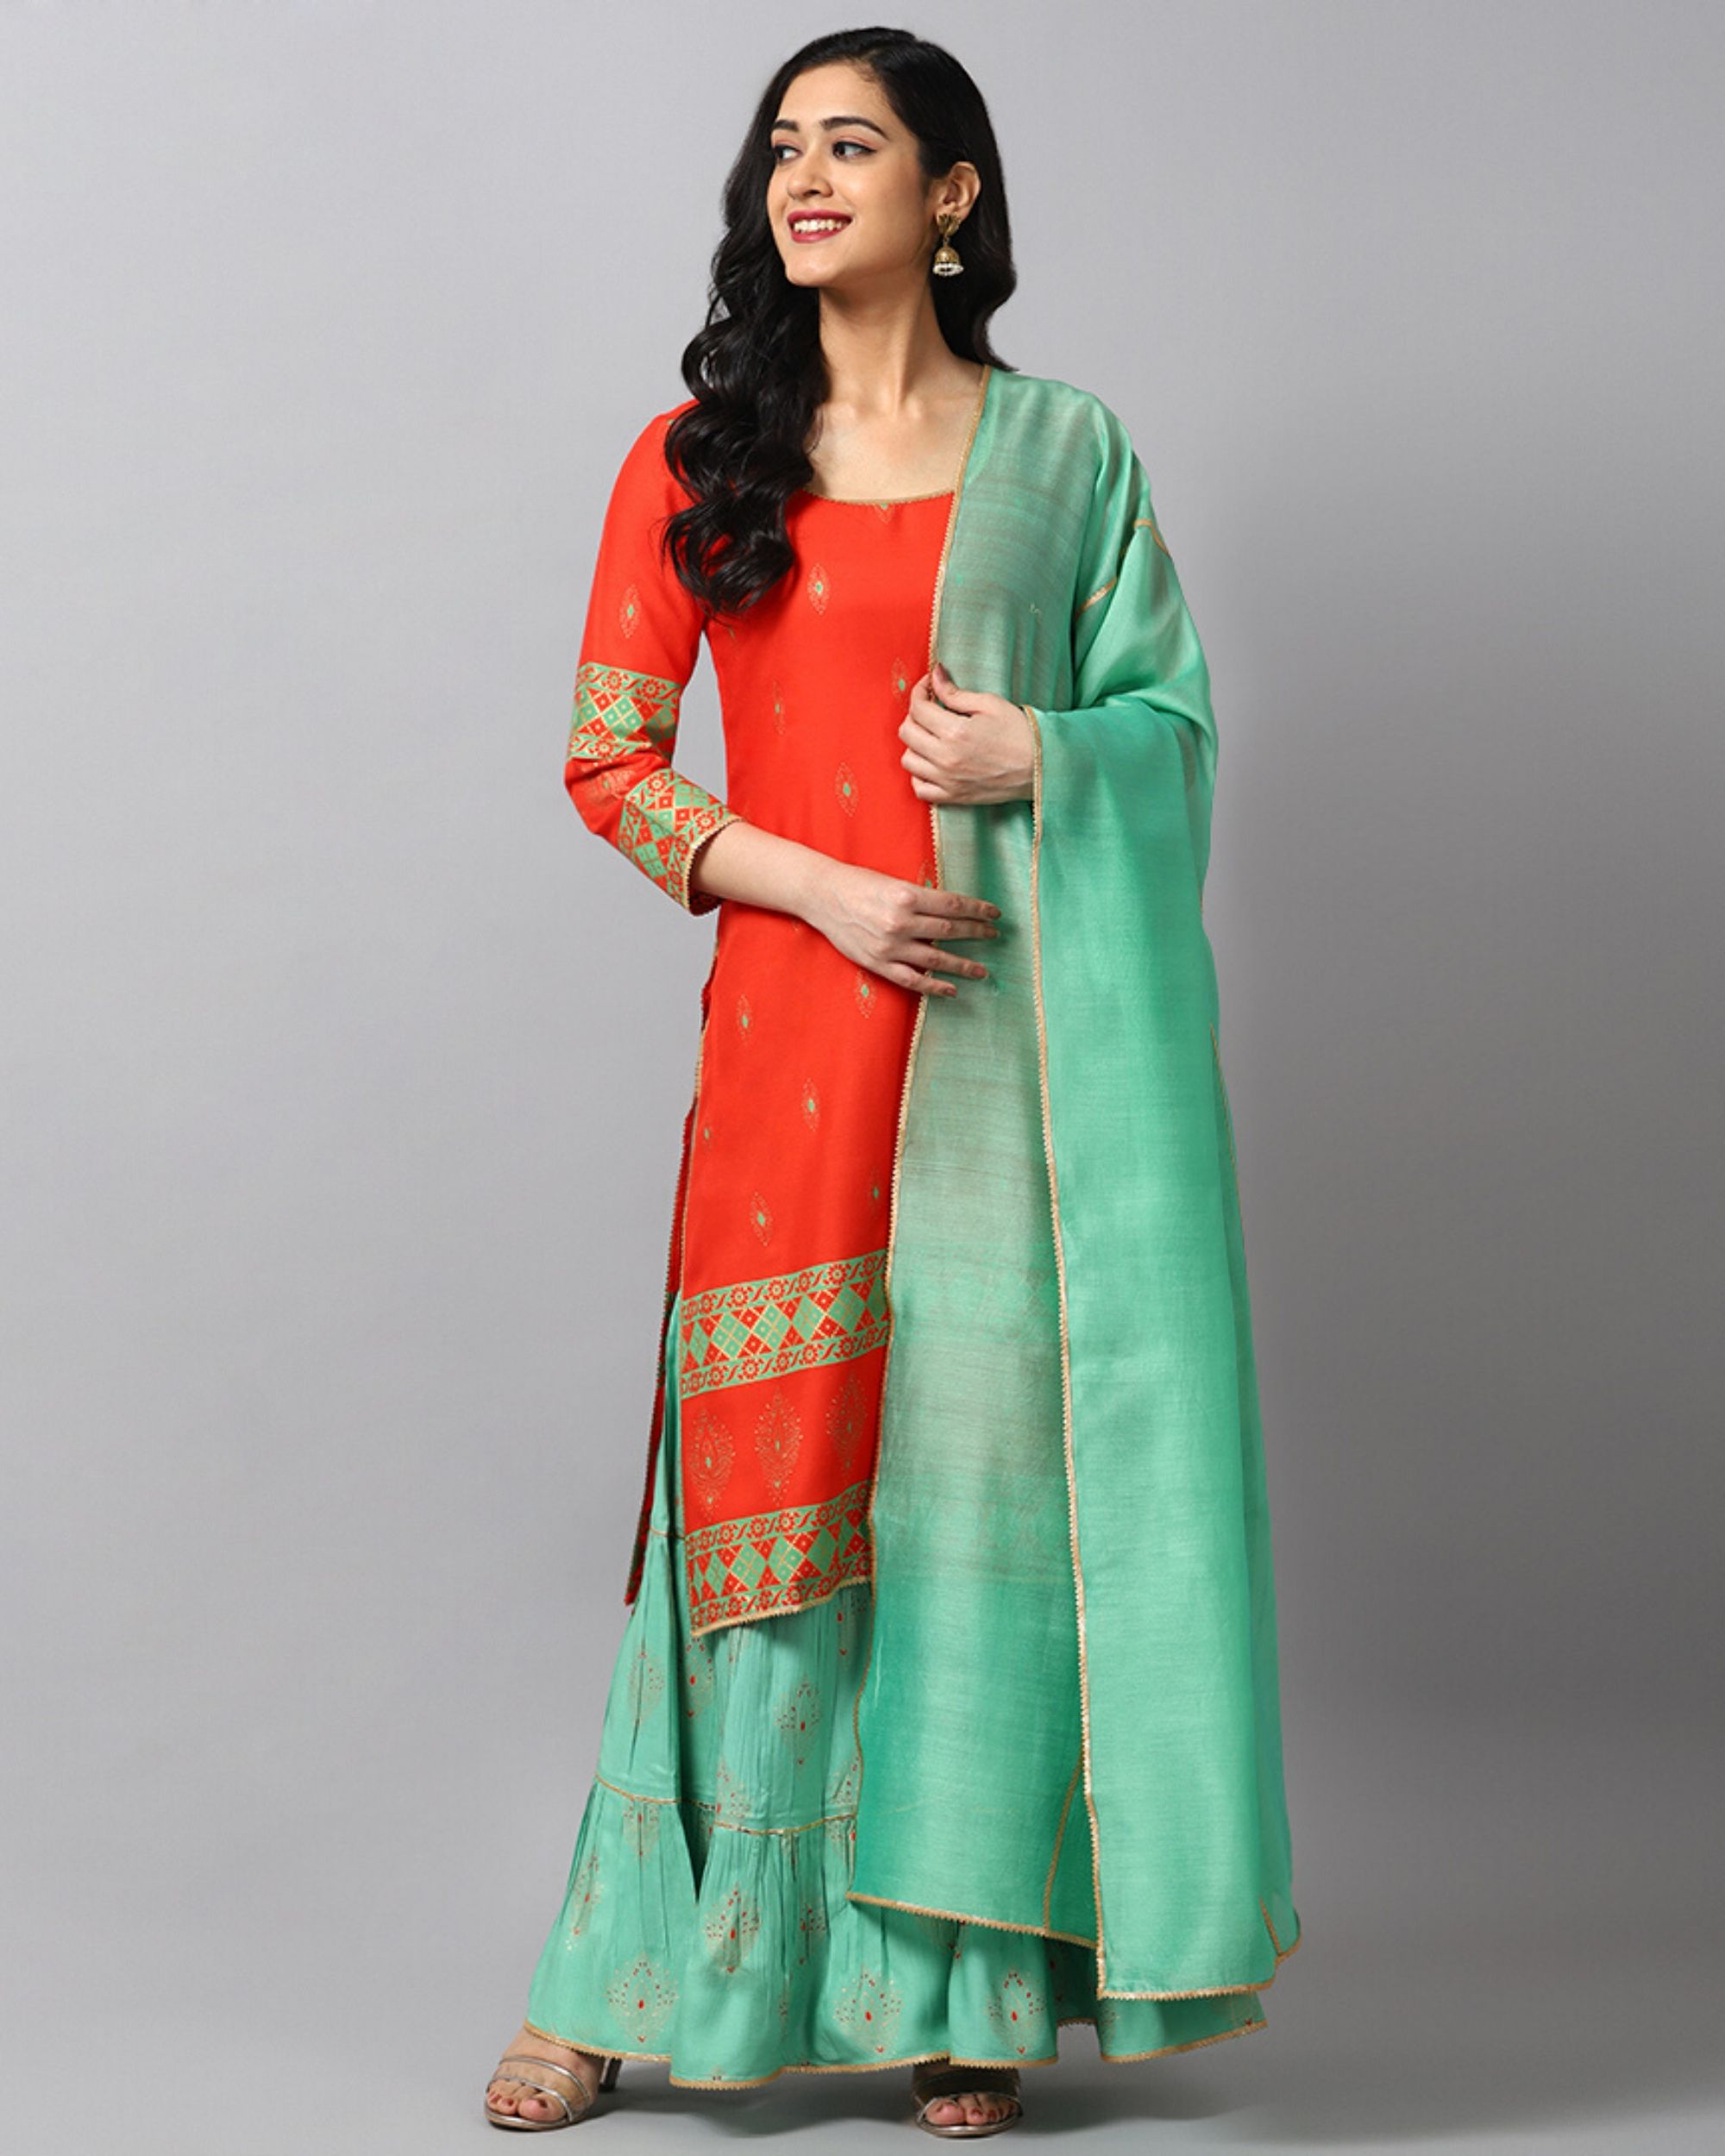 Red panel printed kurta and sharara with turquoise dupatta- Set Of Three